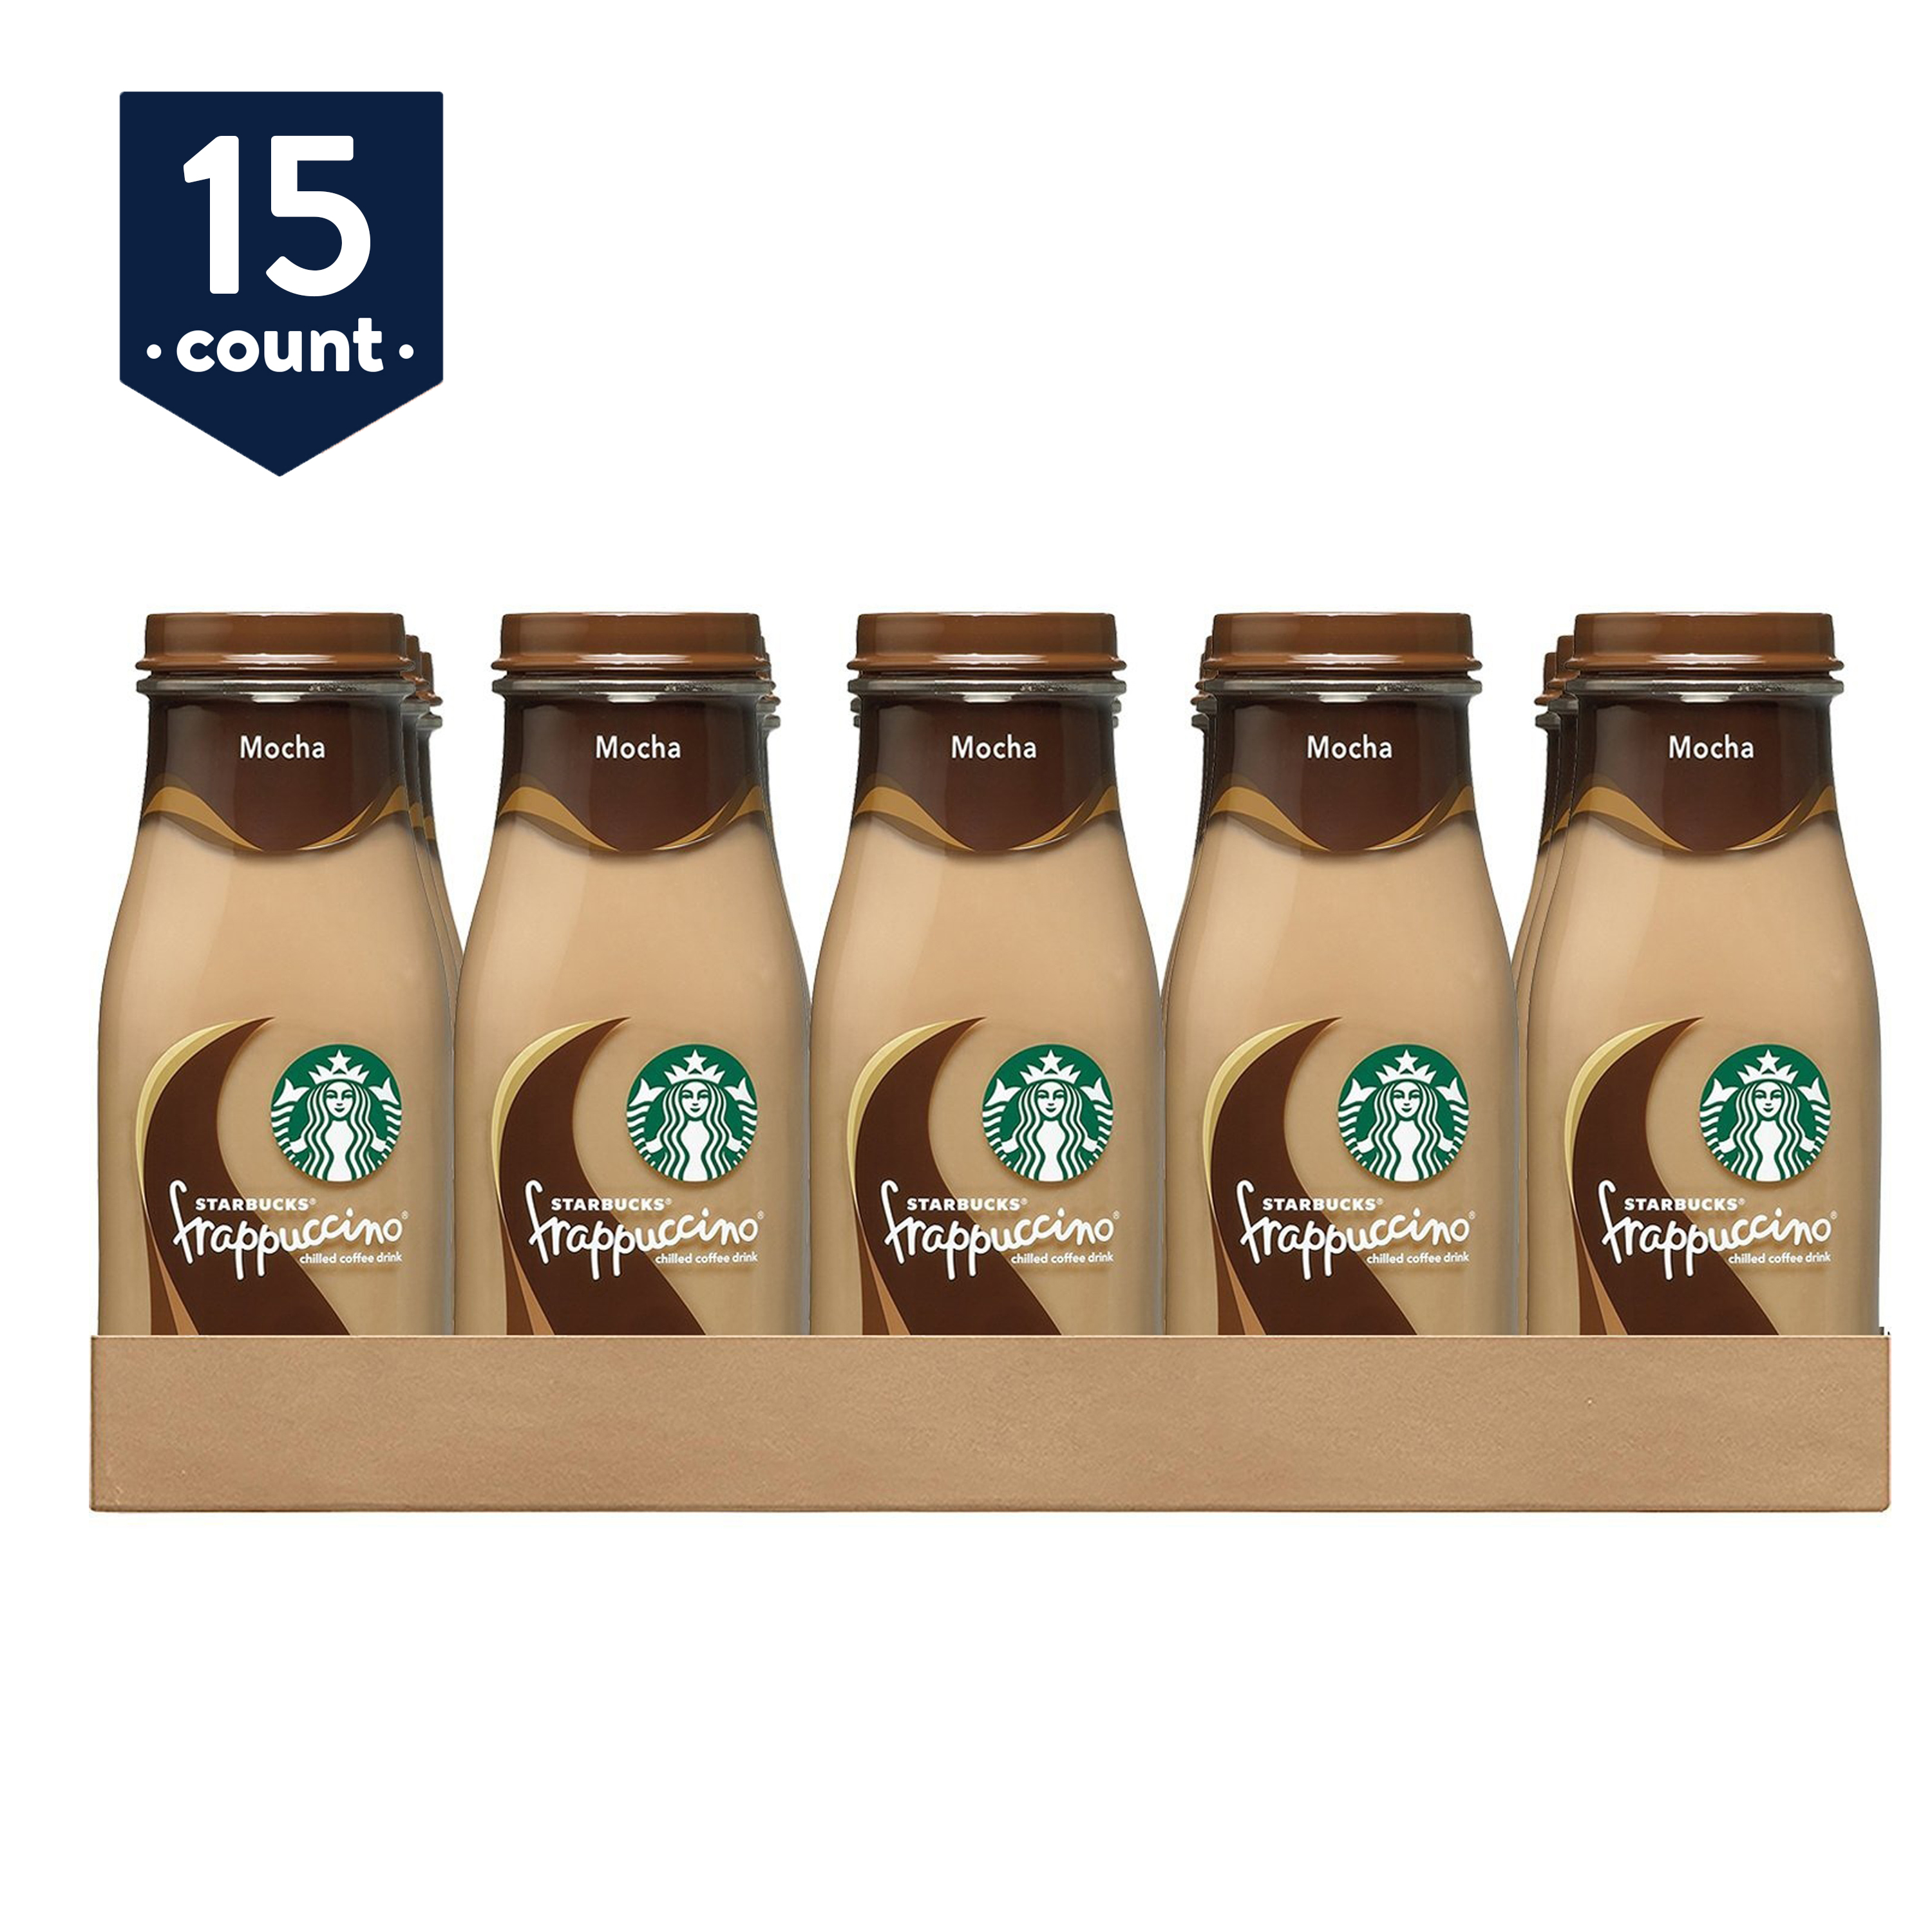 (15 Bottles) Starbucks Frappuccino Coffee Drink, Mocha, 9.5 oz Glass Bottles